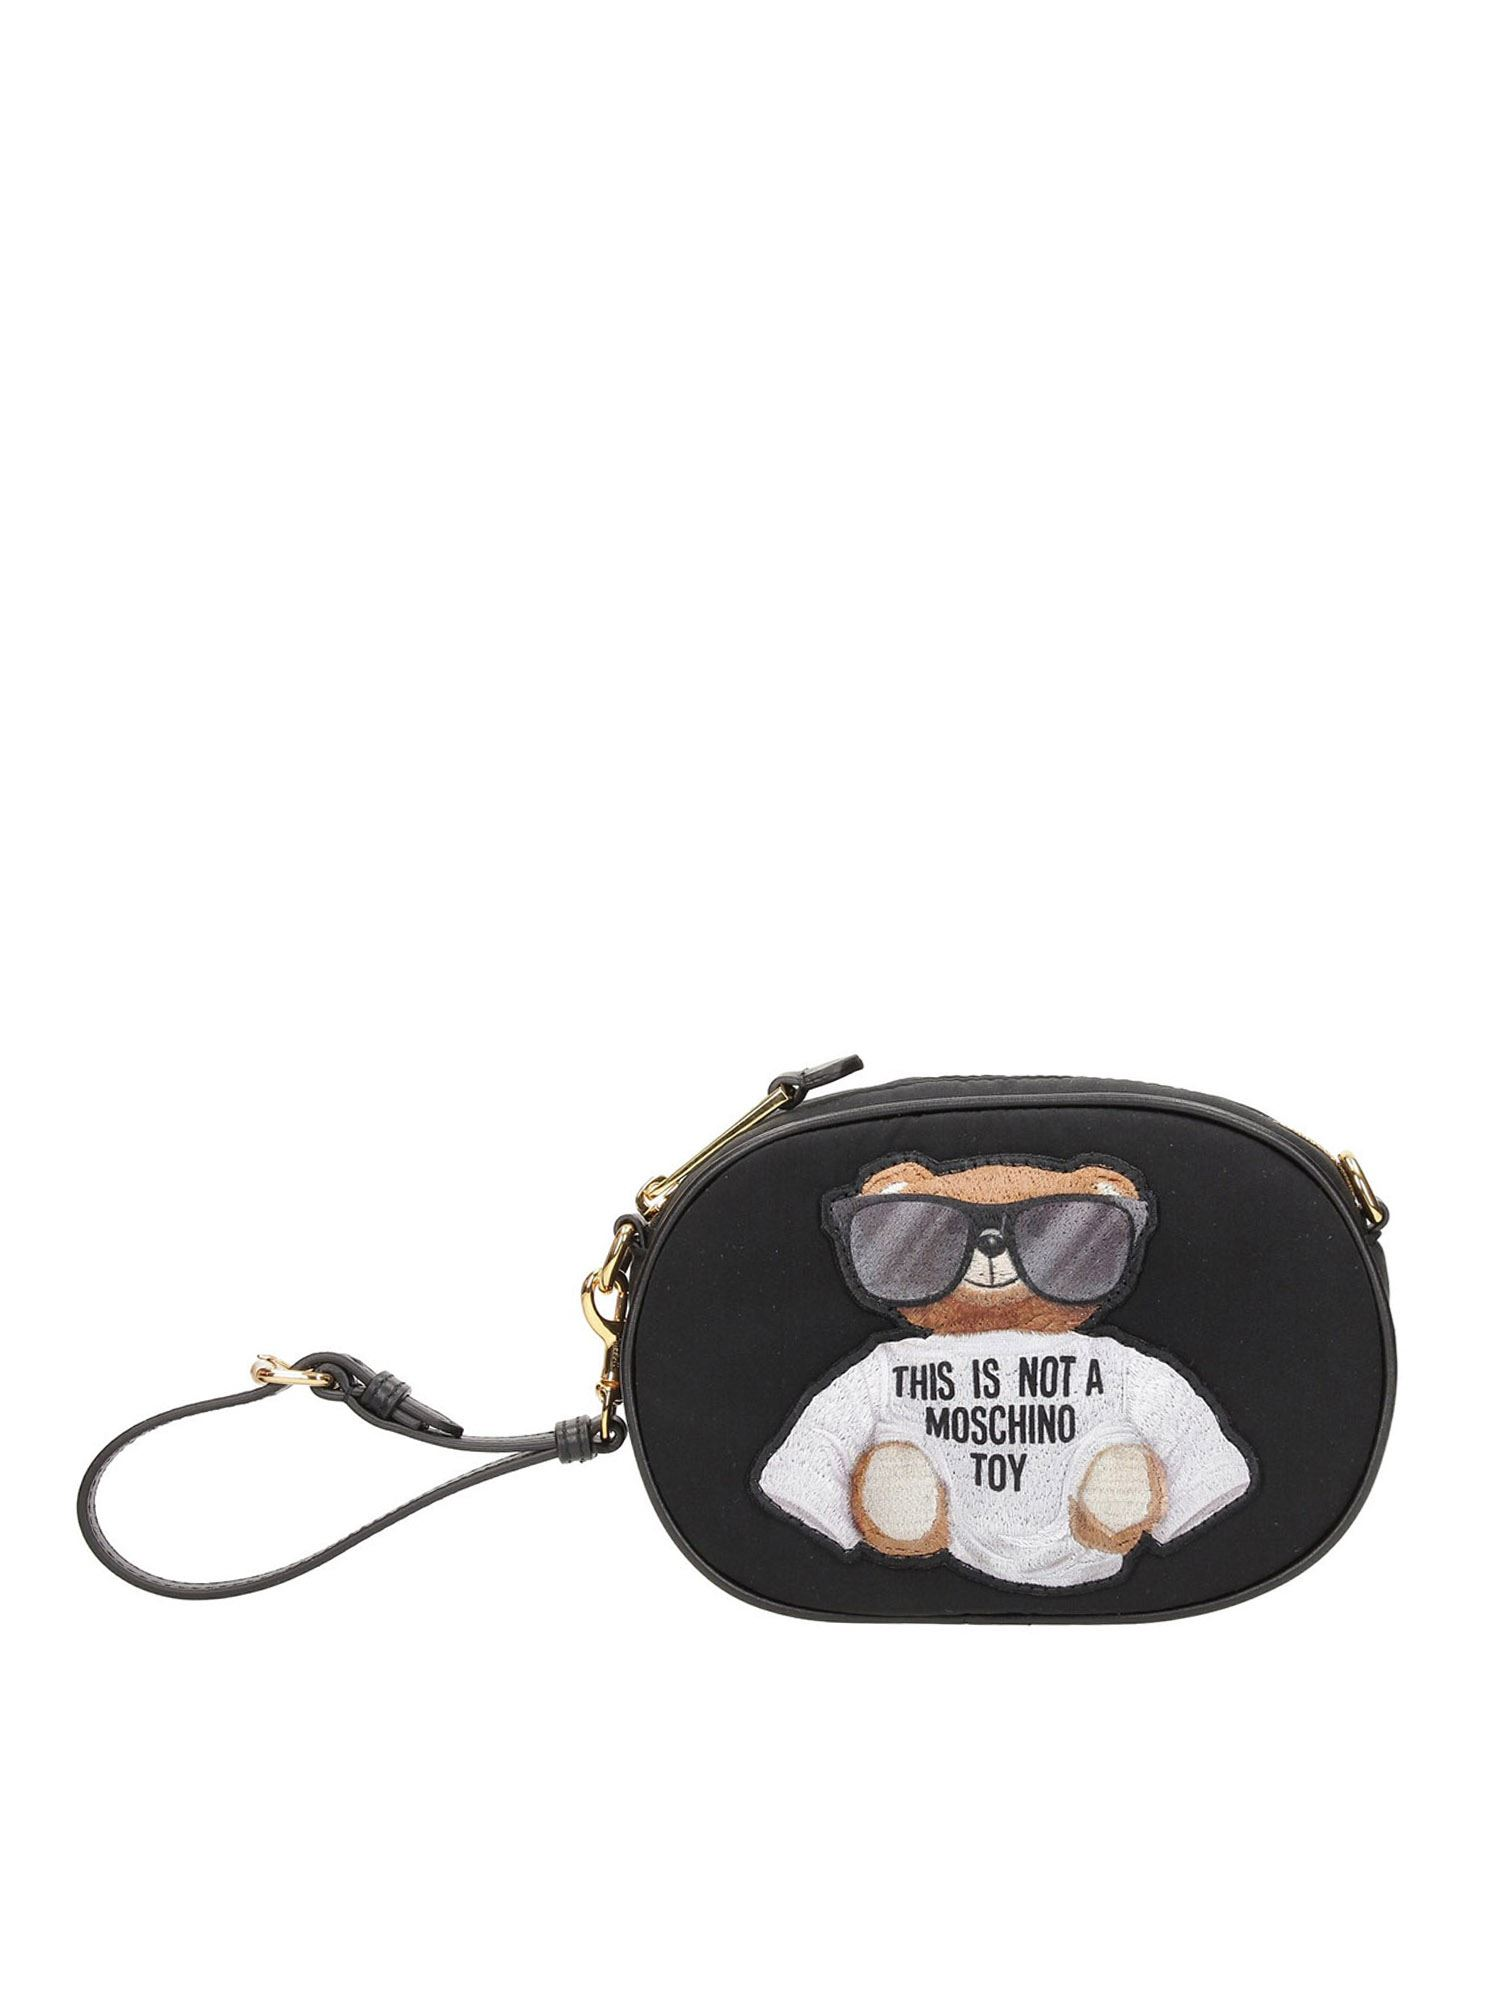 Moschino MICRO TEDDY BEAR BELT BAG IN BLACK